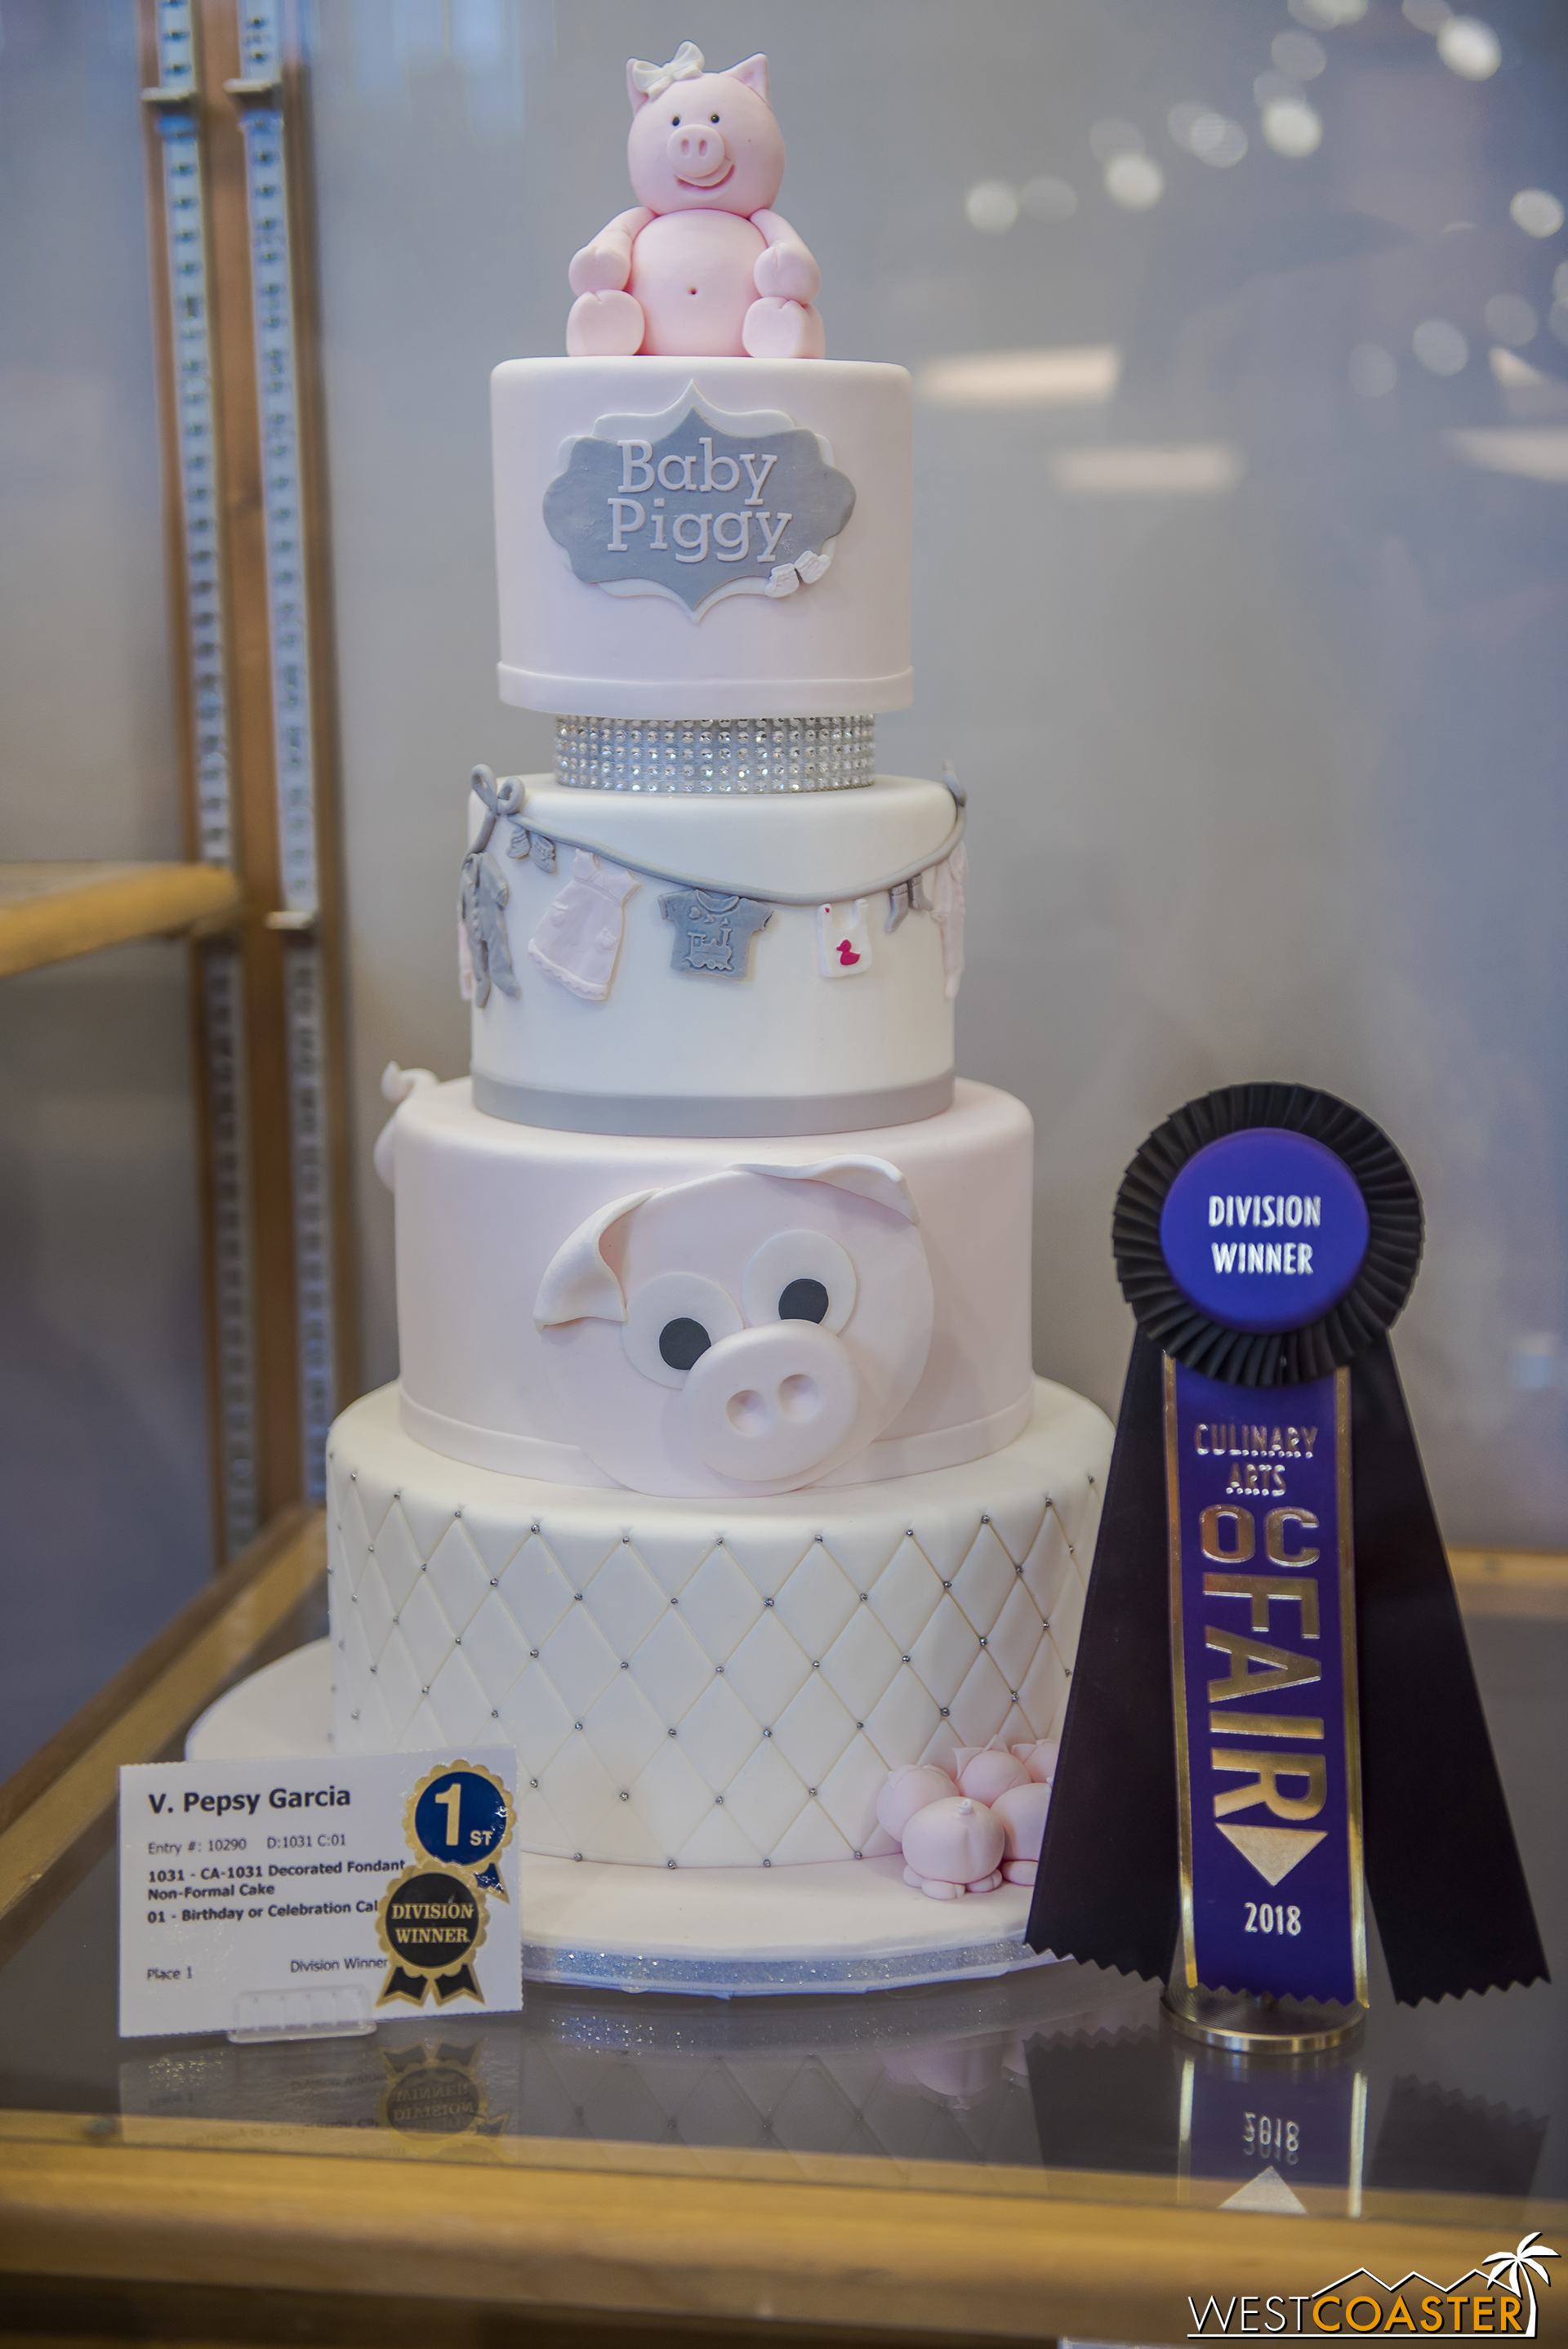 In the same hall, a collection of cakes baked by Orange County residents can also be found.